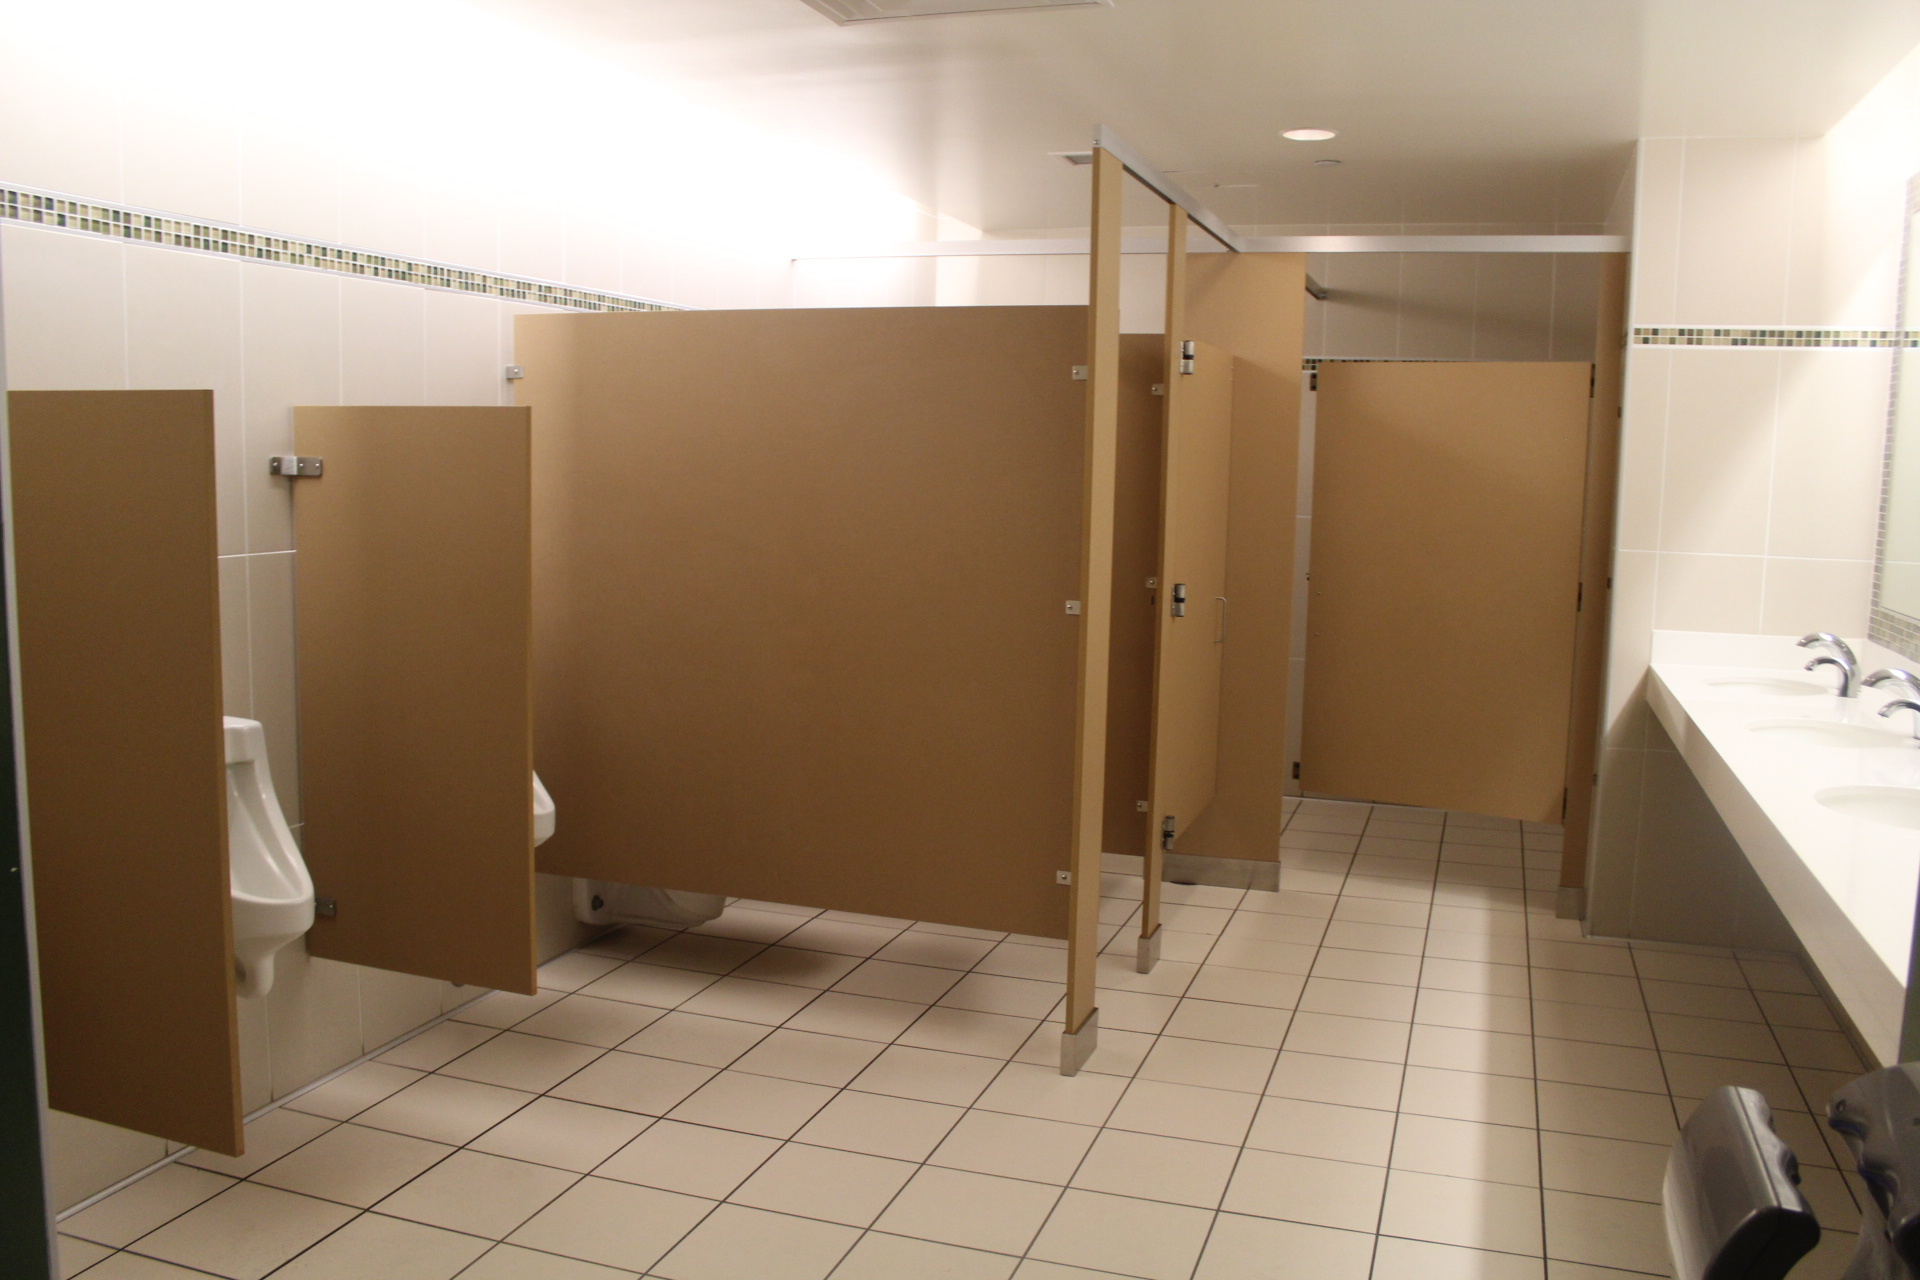 The Best And Worst Bathrooms On Csu 39 S Campus The Rocky Mountain Collegian